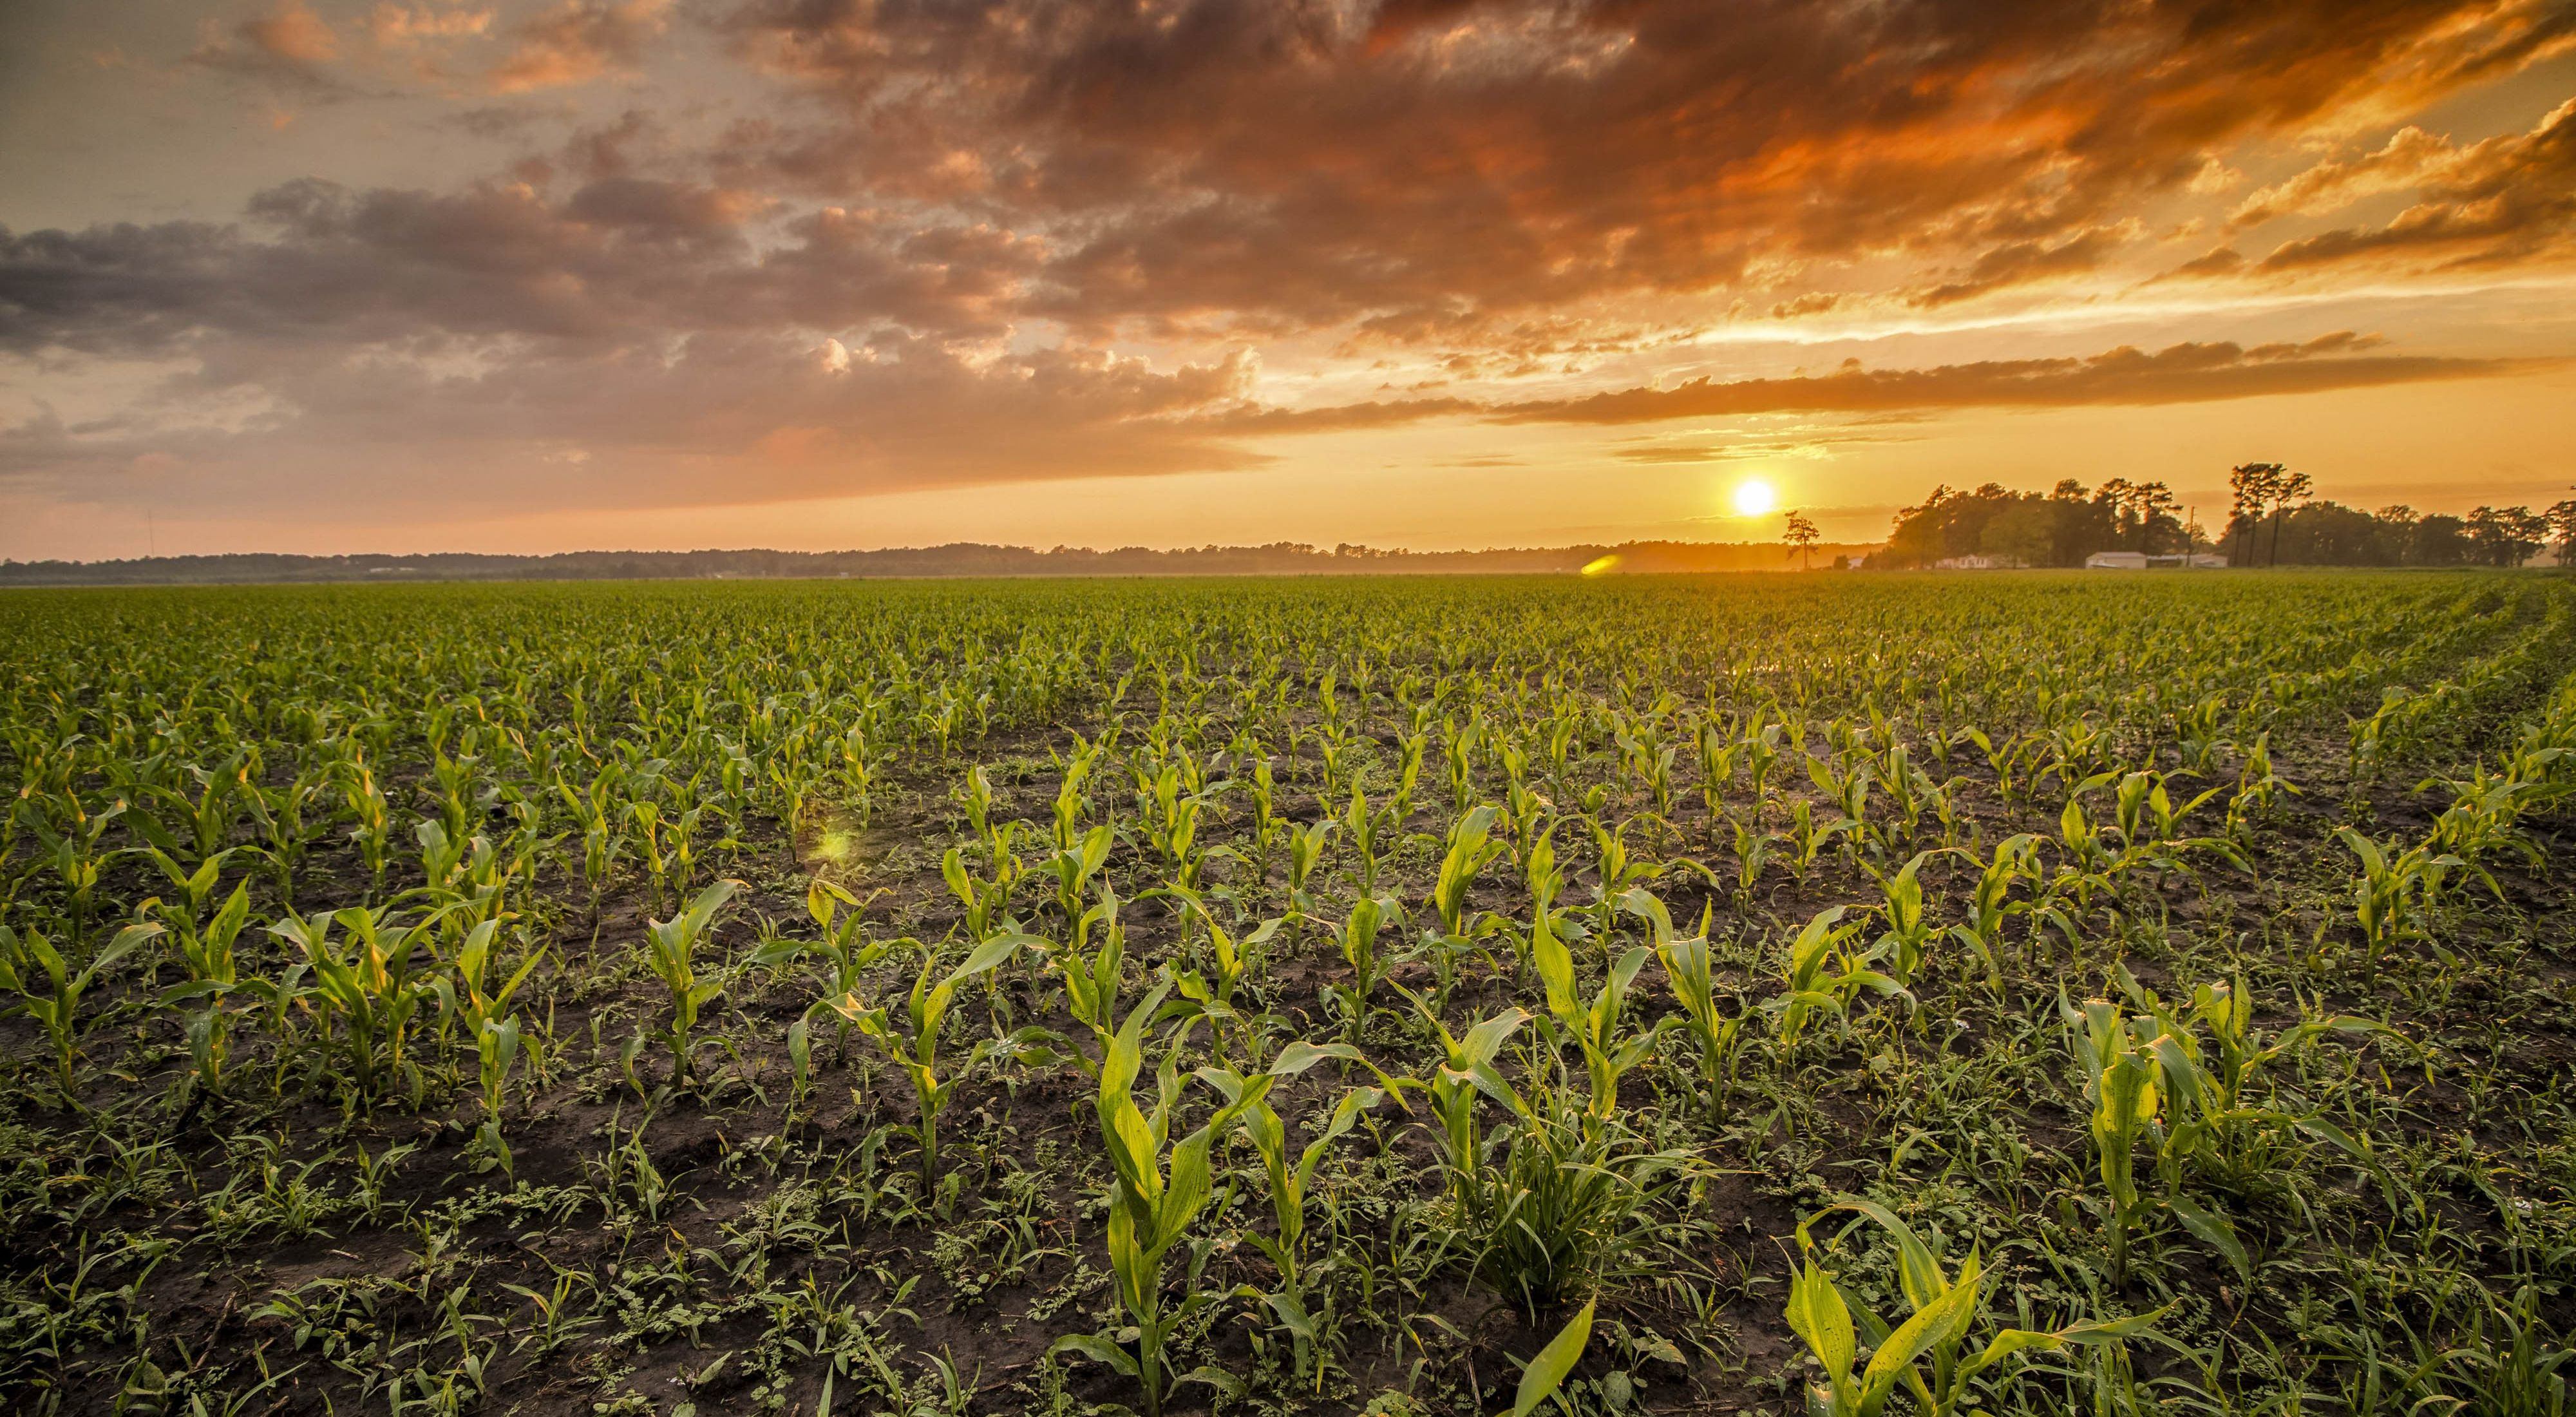 A wide expanse of corn plants a foot or two high under an orange sunset.